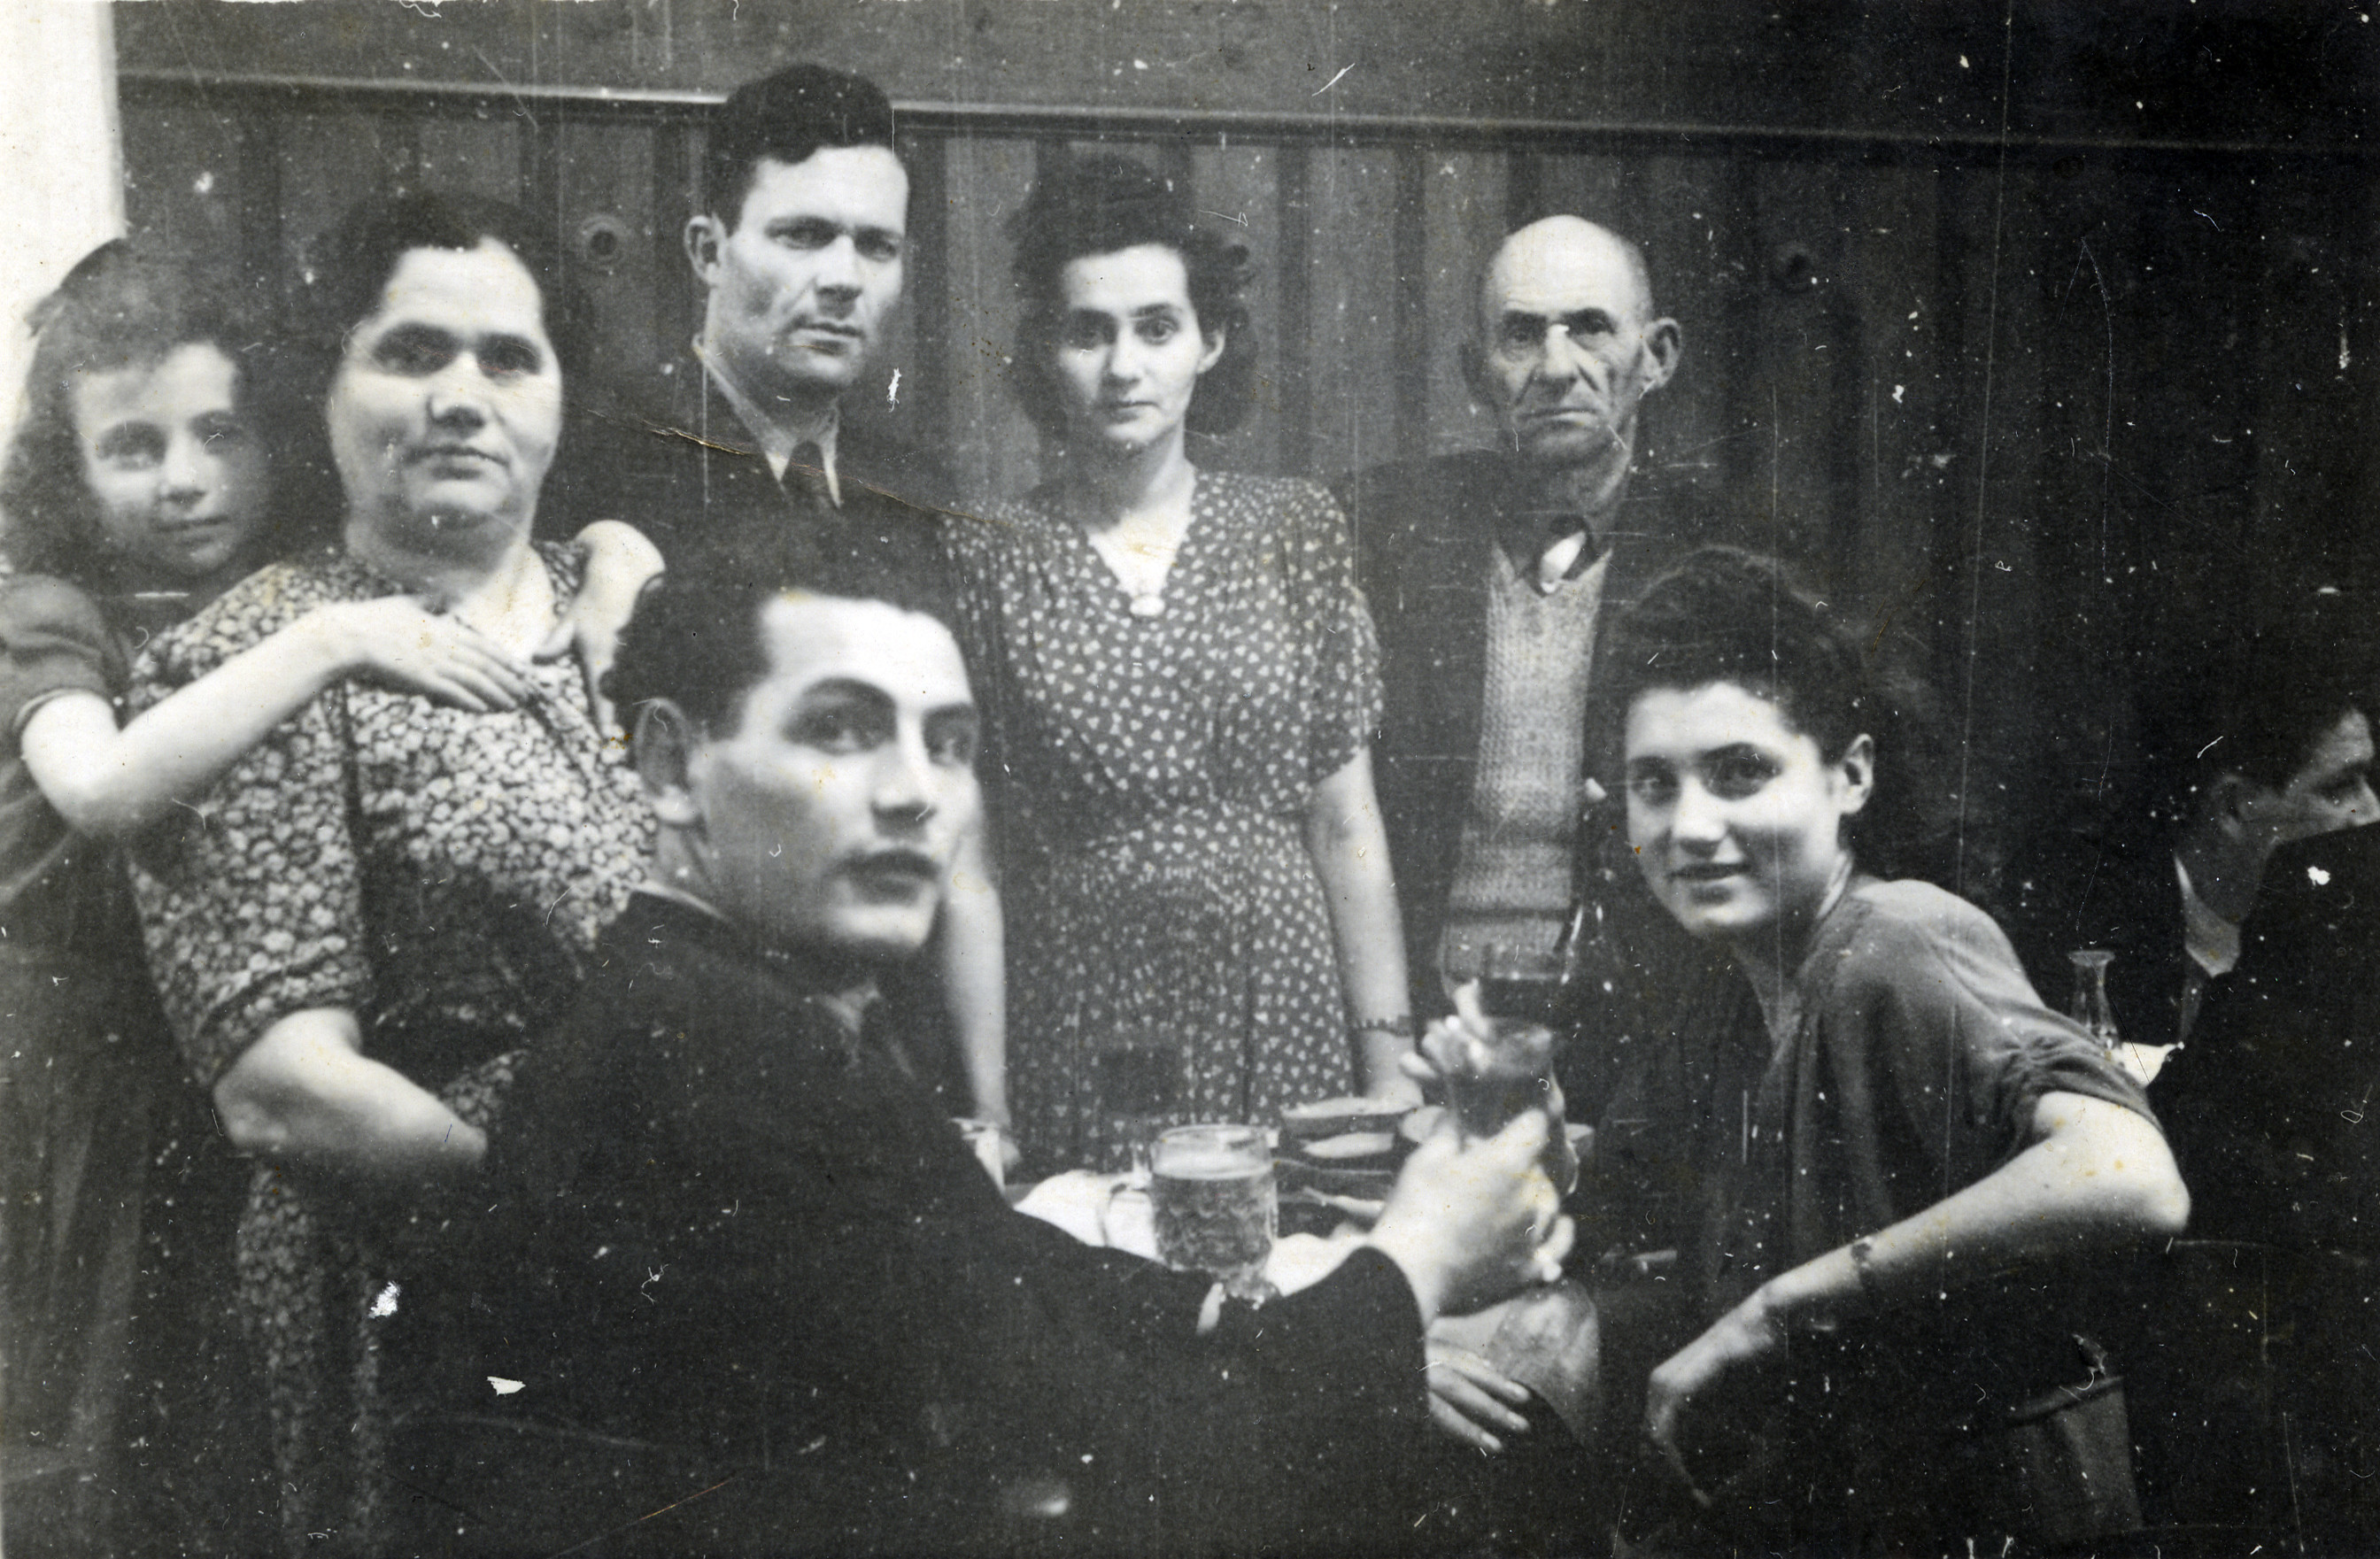 Guests at a wedding at the Heidenheim displaced persons camp.  Pictured are the bride and groom, Rachel  and Zalman (back, center); Raya and her husband Israel Eisenman, who survived Auschwitz (front); Zippora and her grandmother Fania (first and second from the left); and Shlomo Rochman, Zippora's grandfather's brother, who lost his wife and children in Auschwitz.